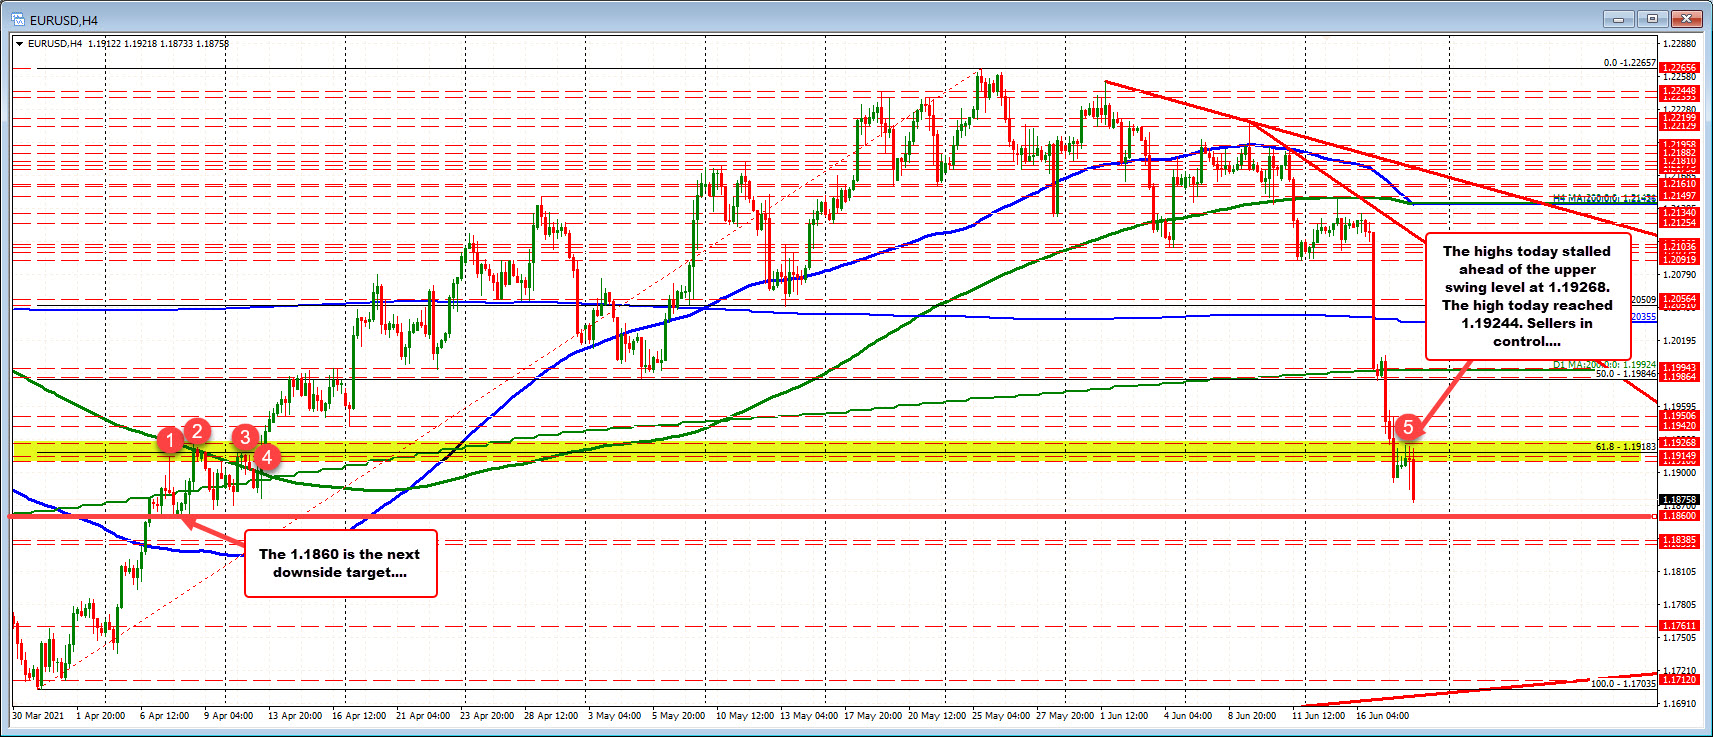 EURUSD trades to lowest level since early April